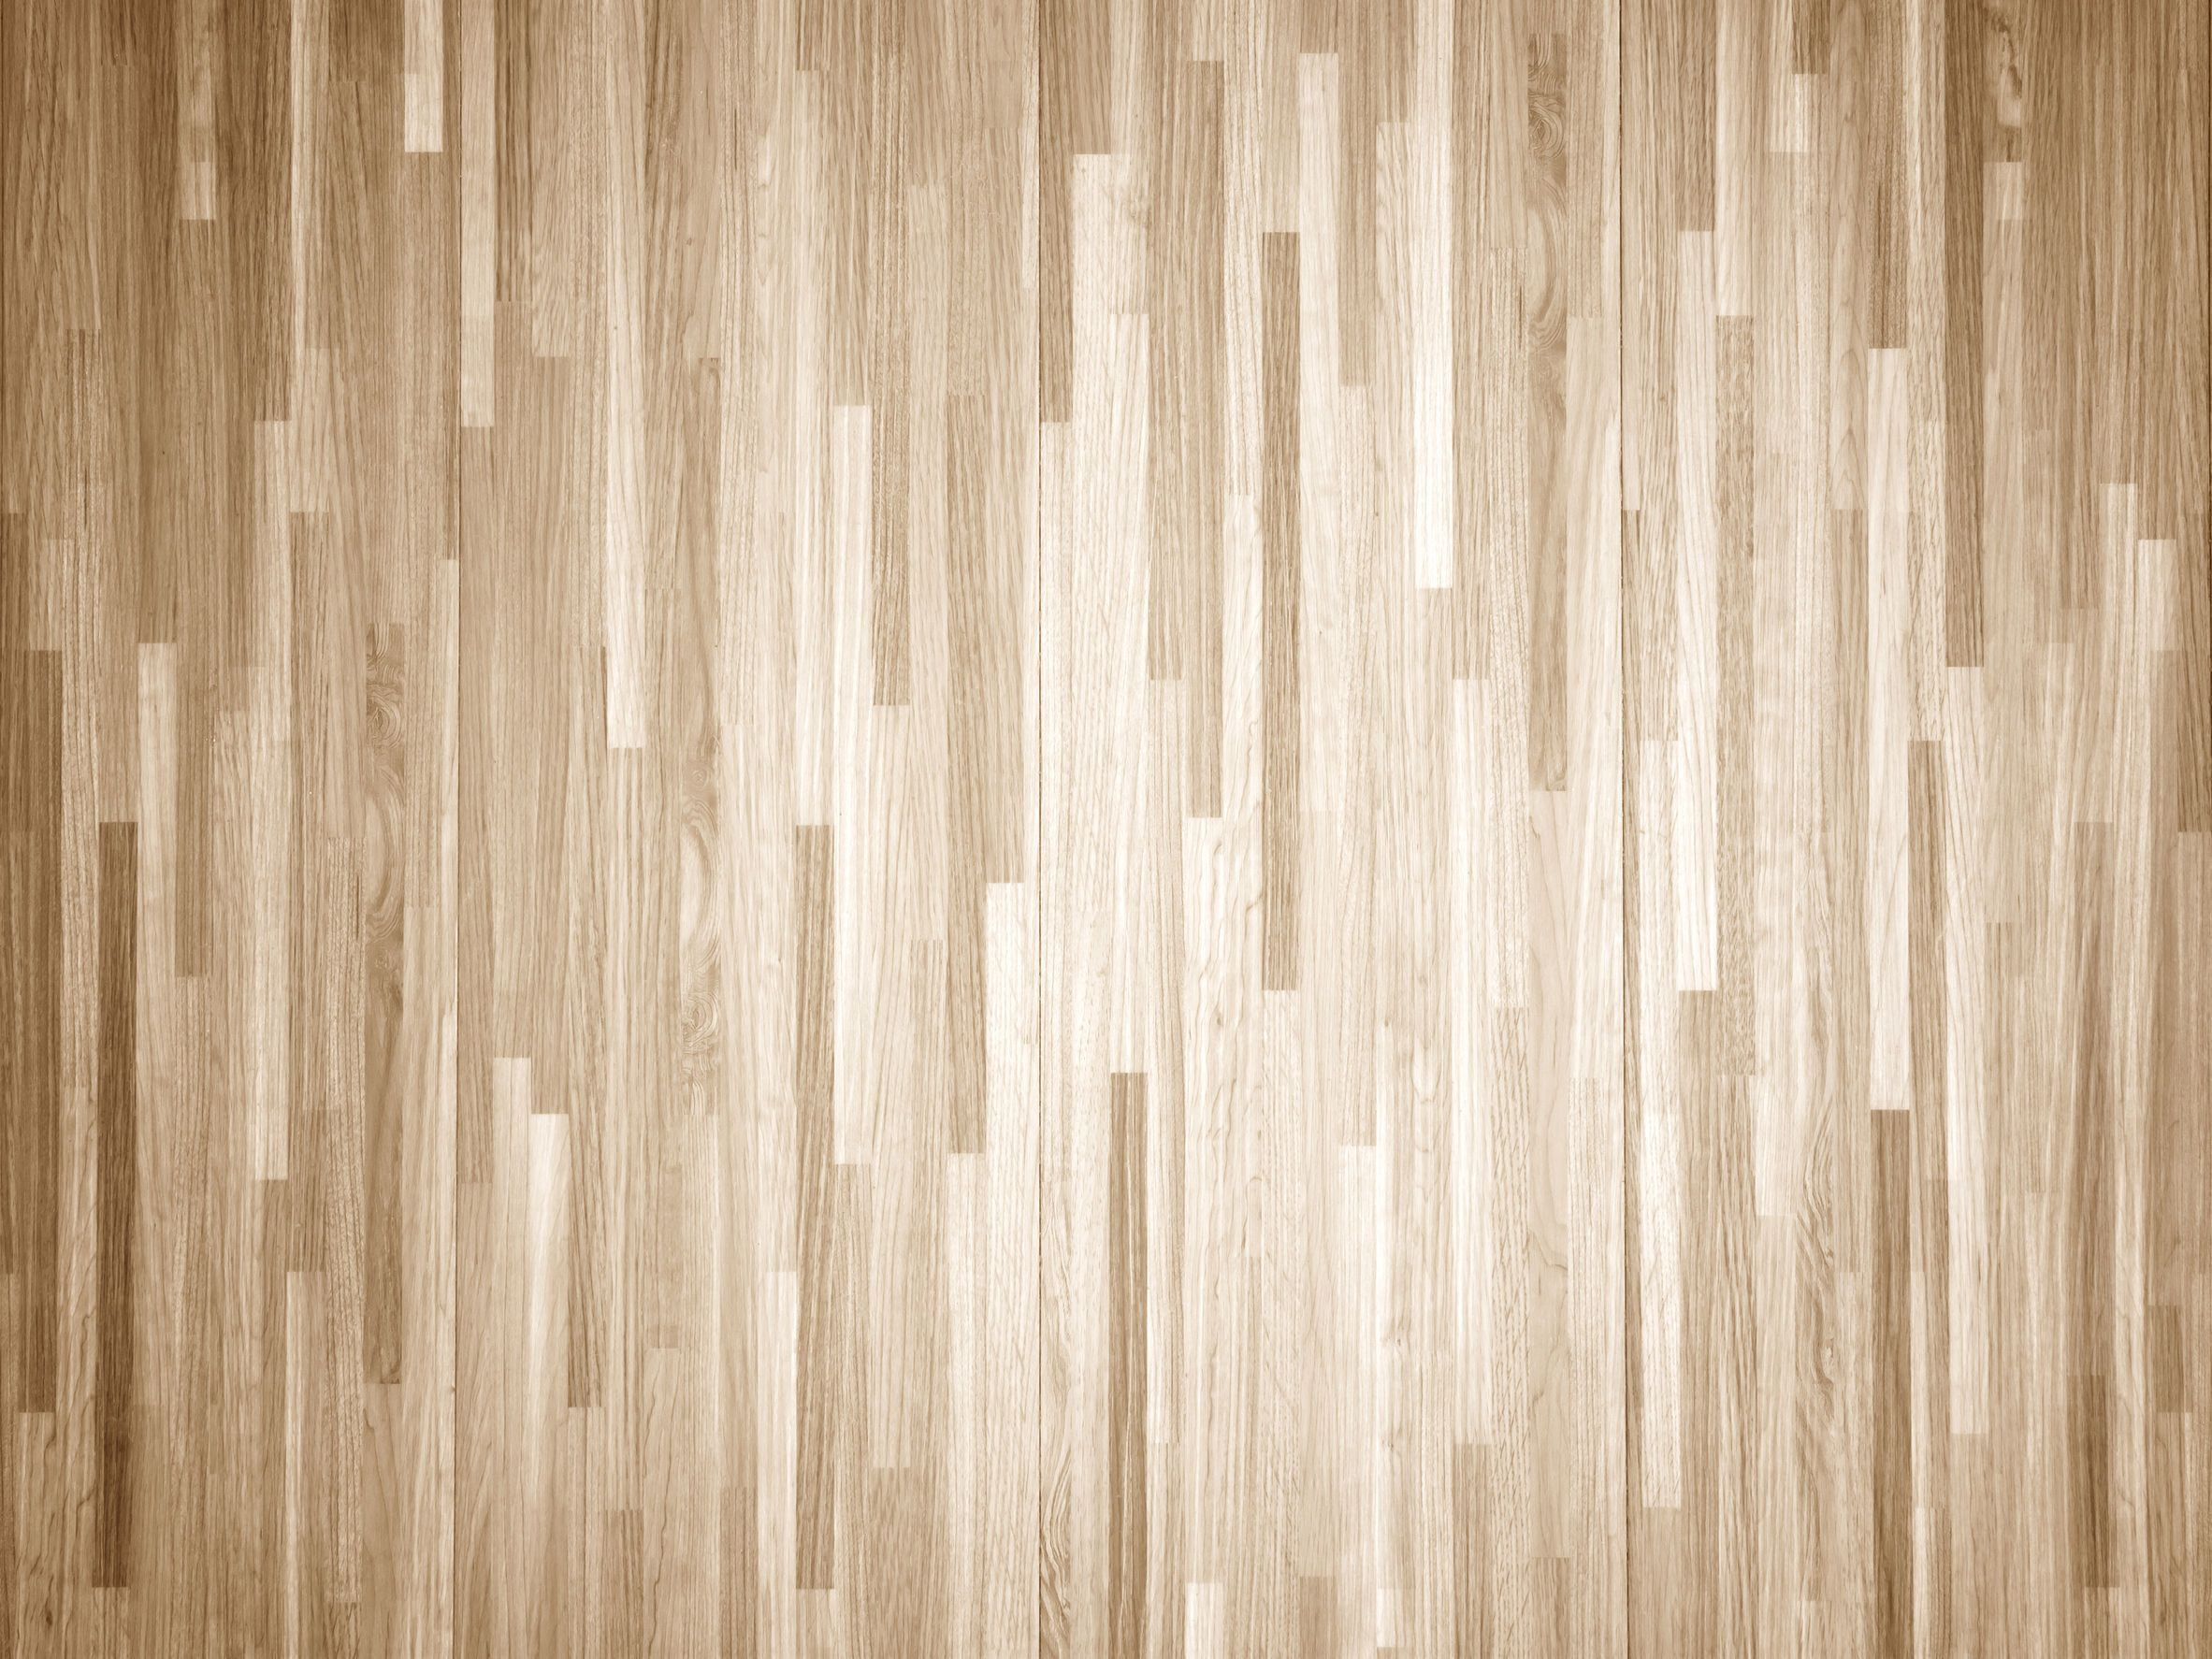 hardwood floor stair kits of how to chemically strip wood floors woodfloordoctor com regarding you